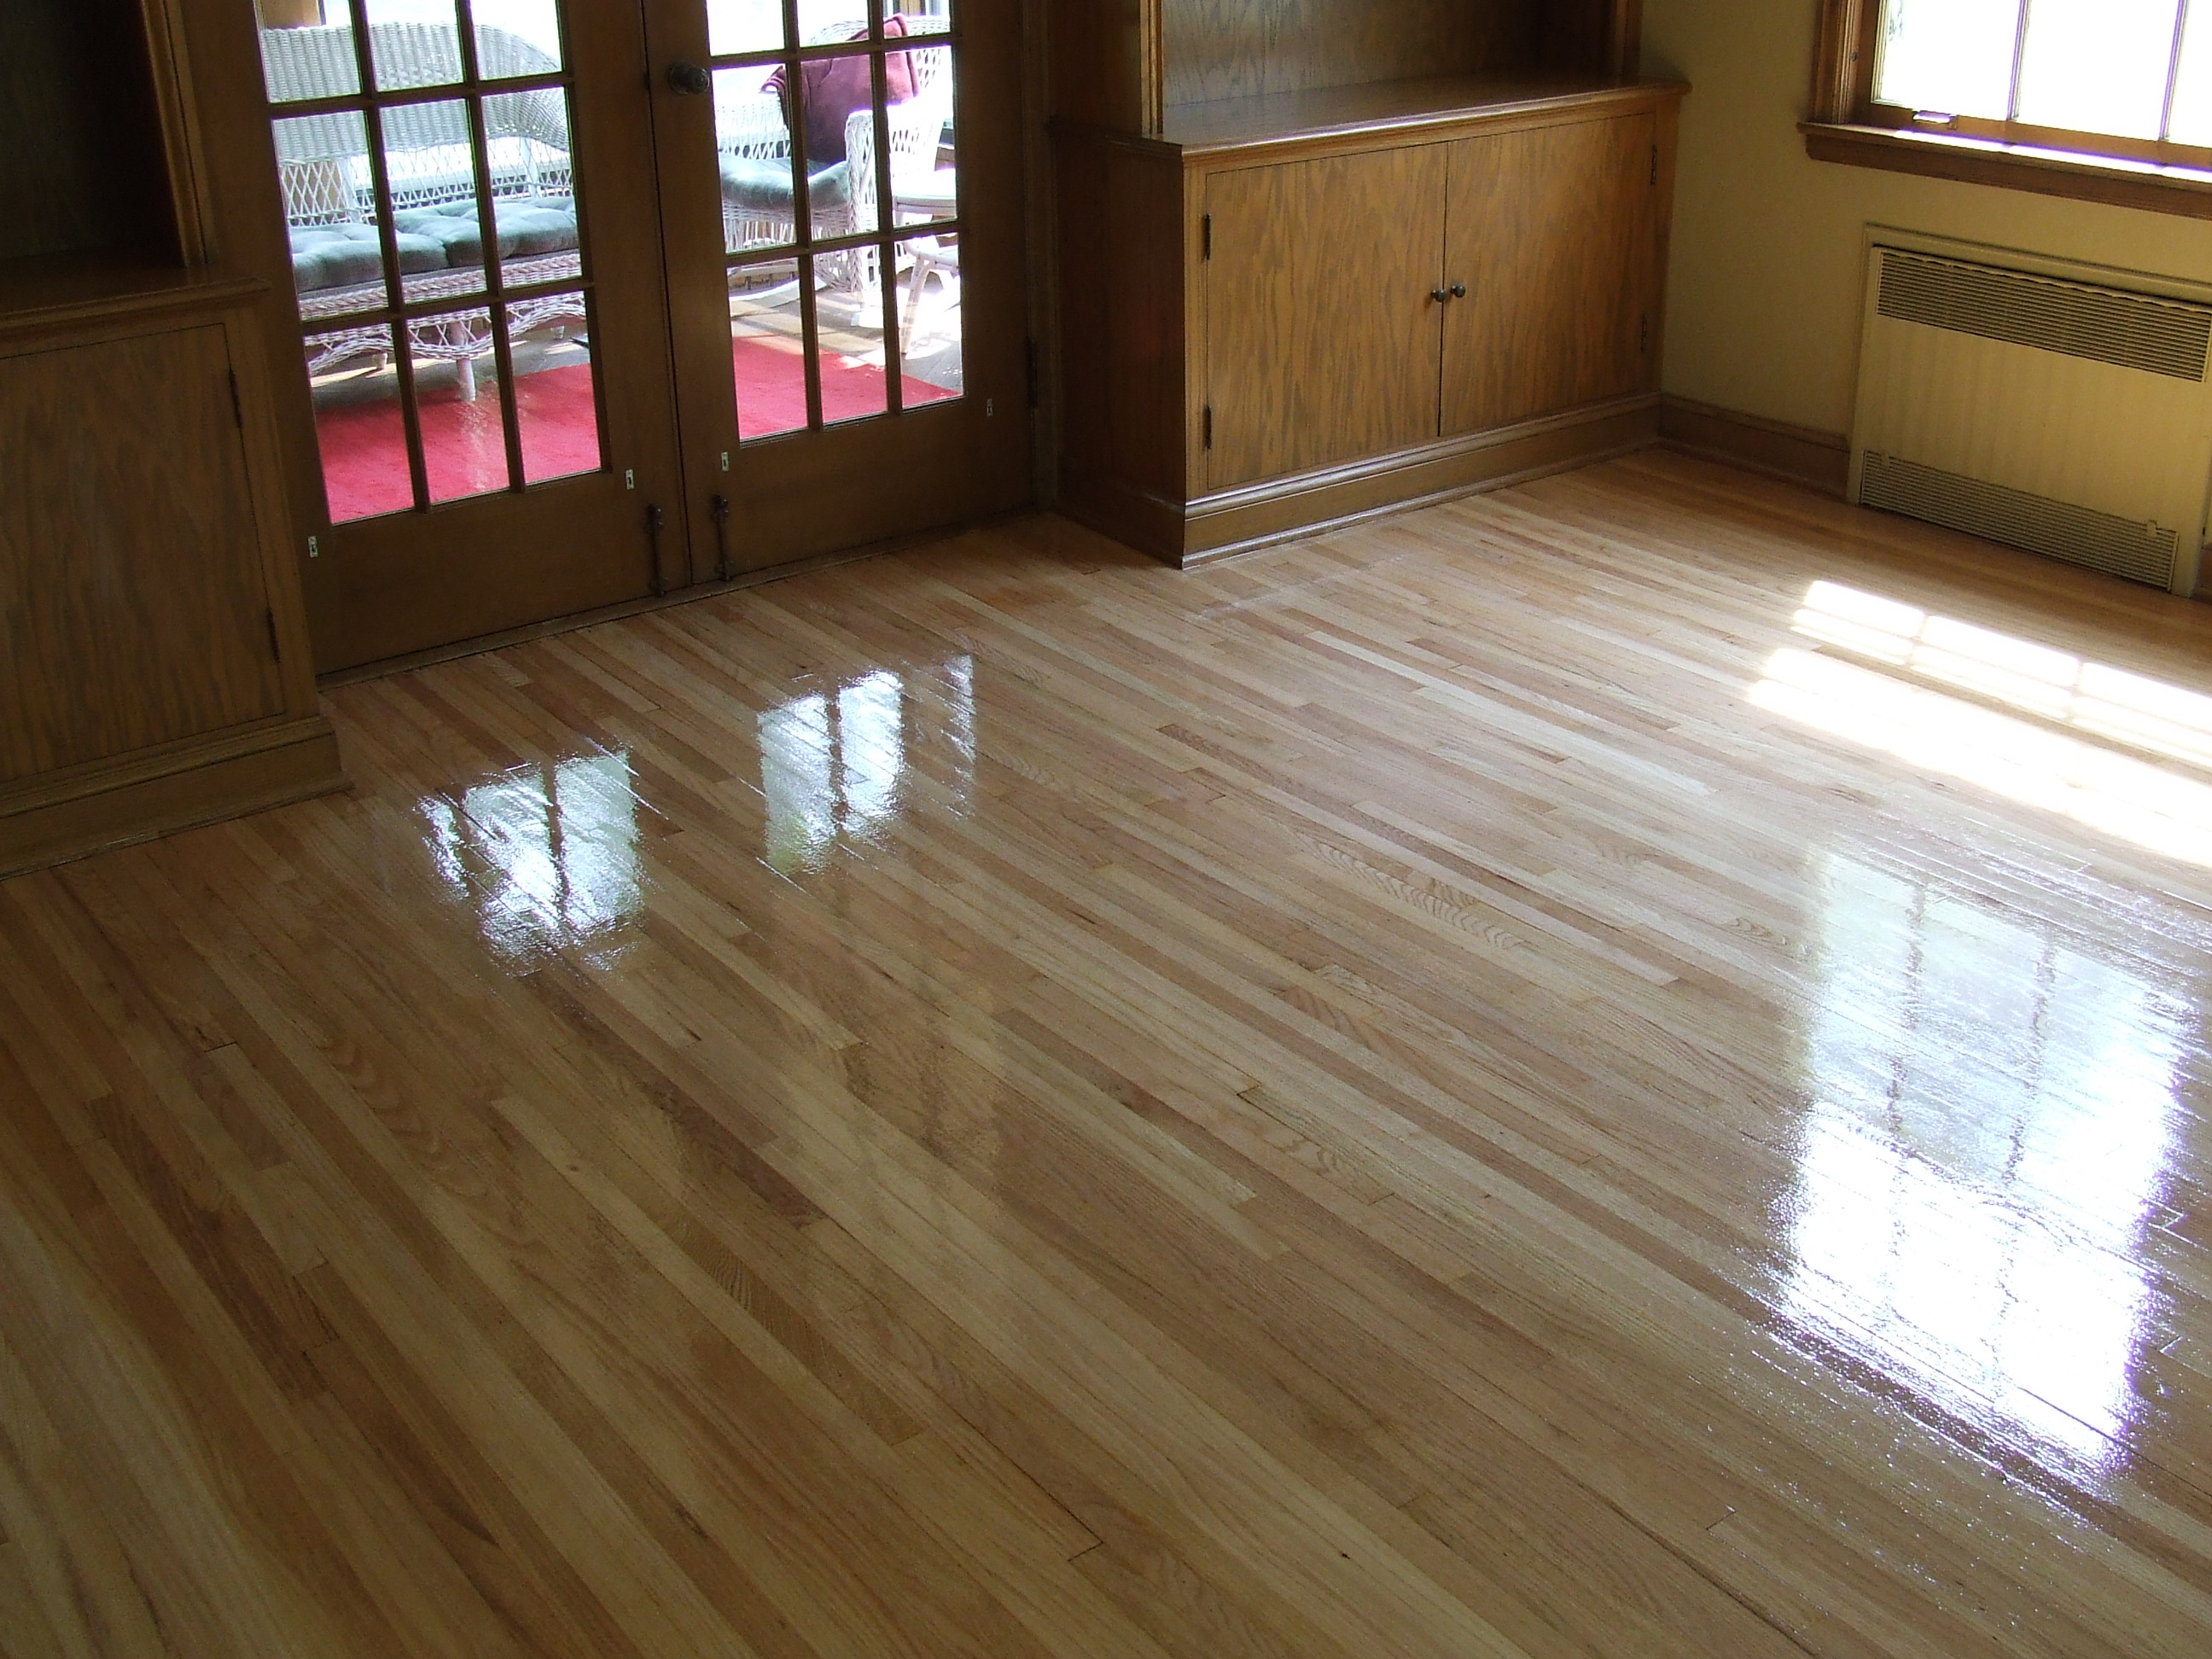 Niagara hardwood flooring st catharines hardwood flooring for Hardwood floor refinishing